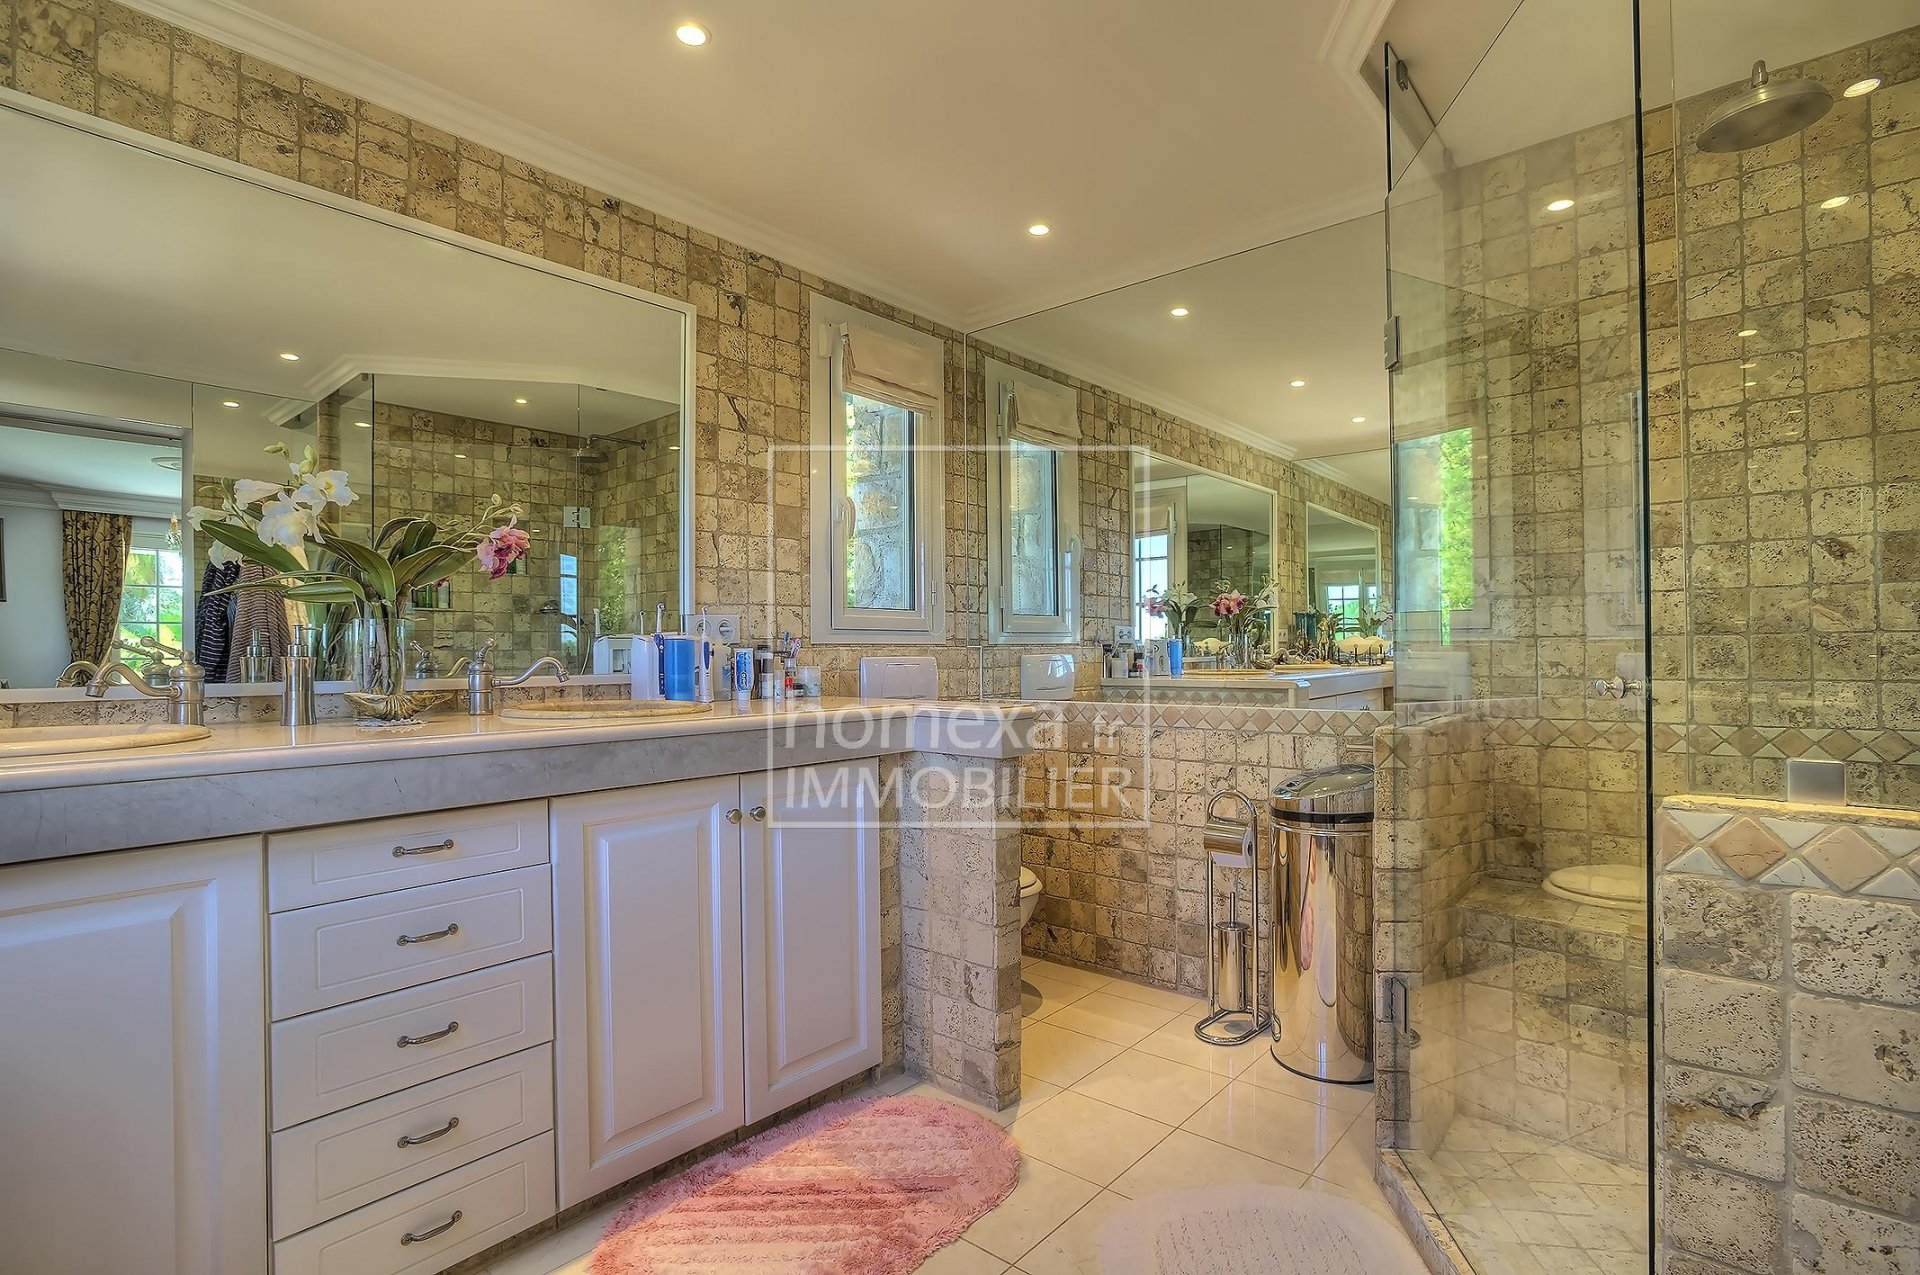 House for sale in Biot - Luxurious private domain